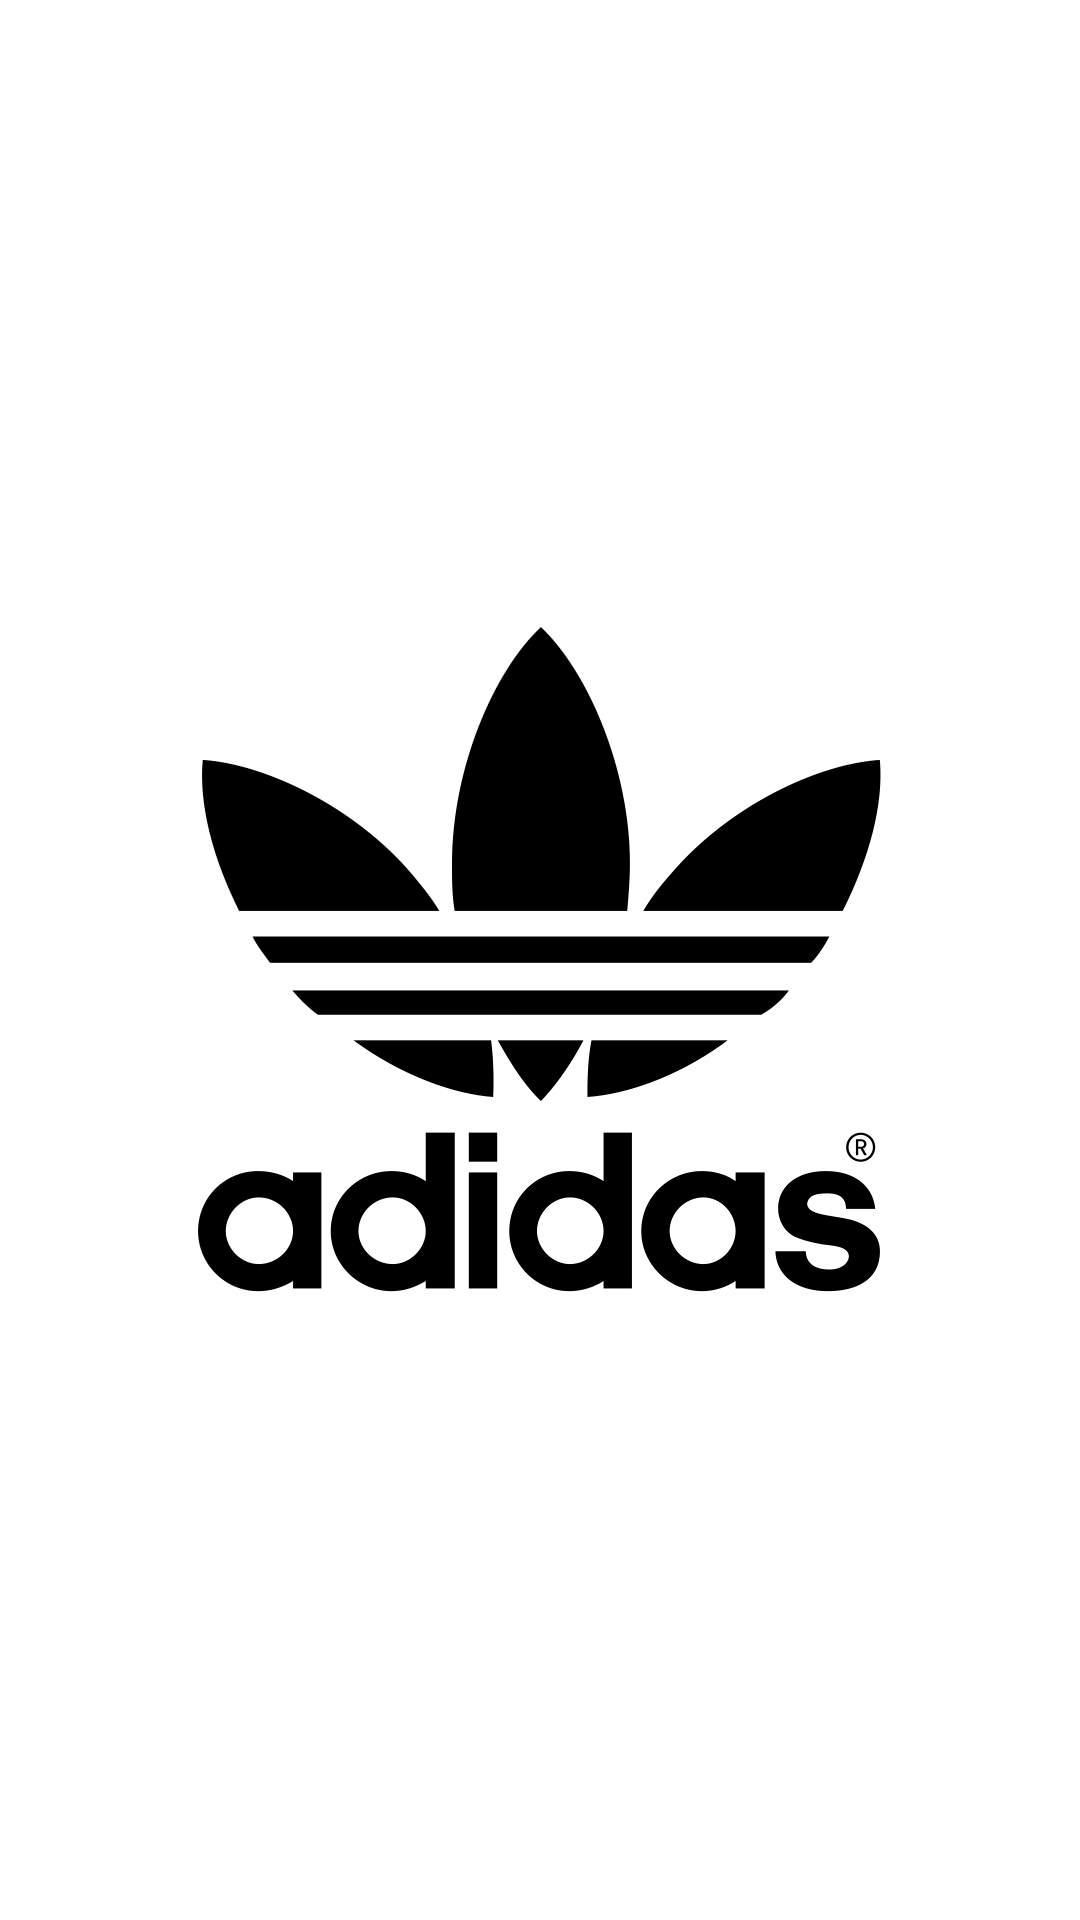 29 Fashion Trends Pinterest Adidas Logo Logos Iphone Wallpaper Gambar